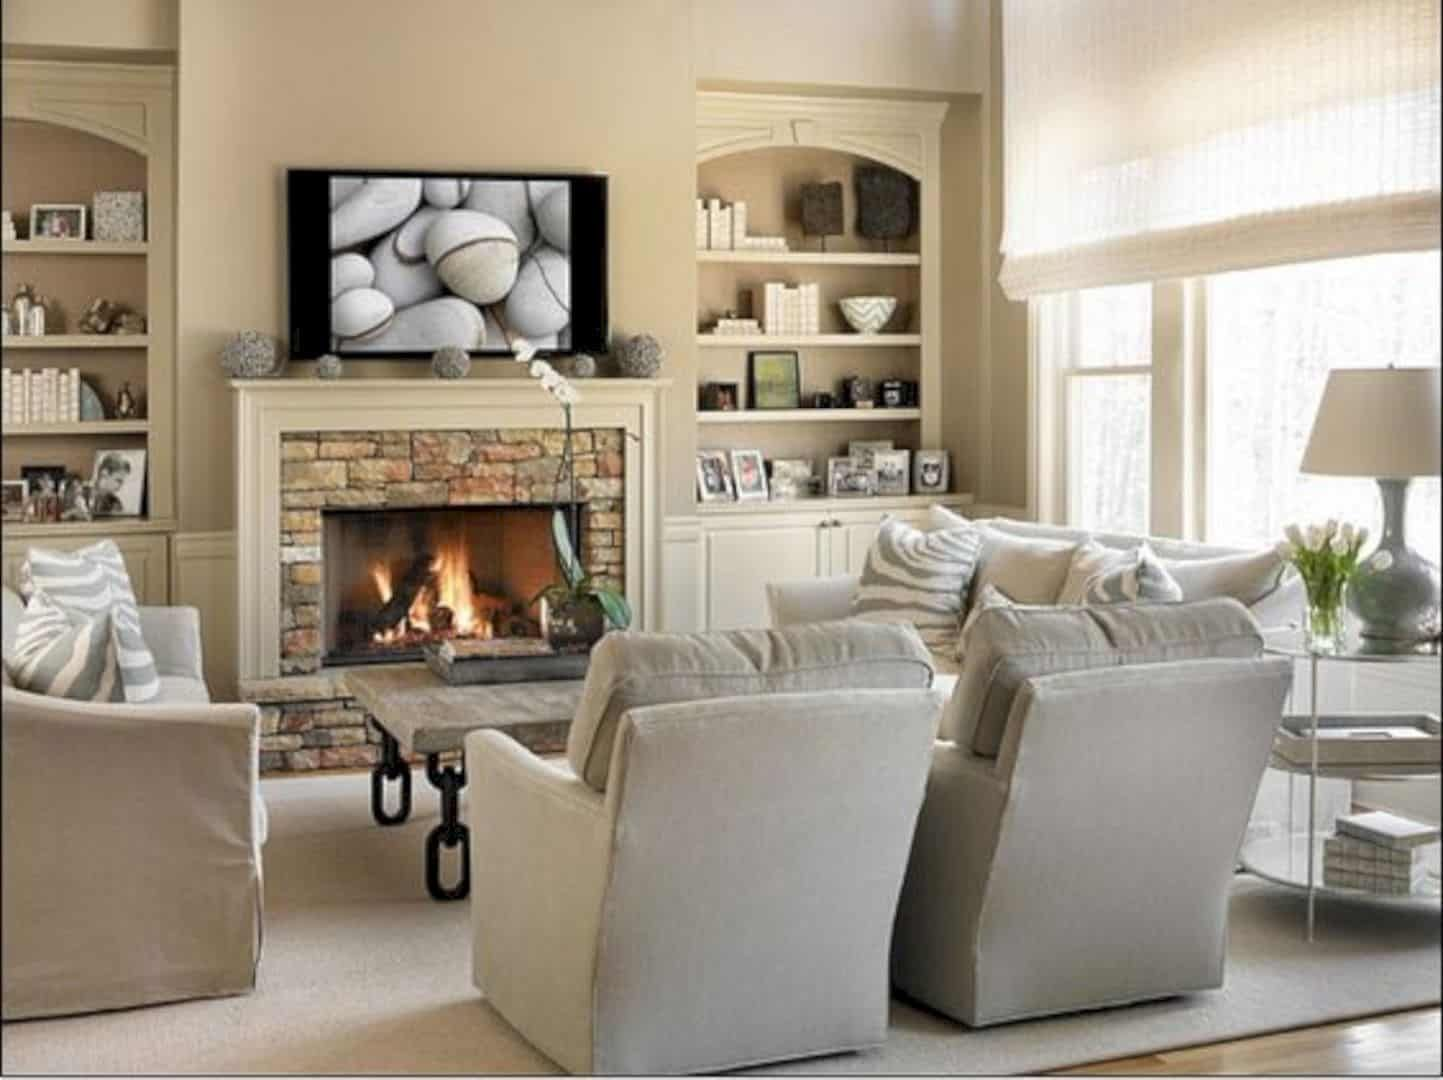 15 Living Room Furniture Layout Ideas With Fireplace To Inspire You Futurist Livingroom Layout Living Room Furniture Arrangement Living Room Furniture Layout